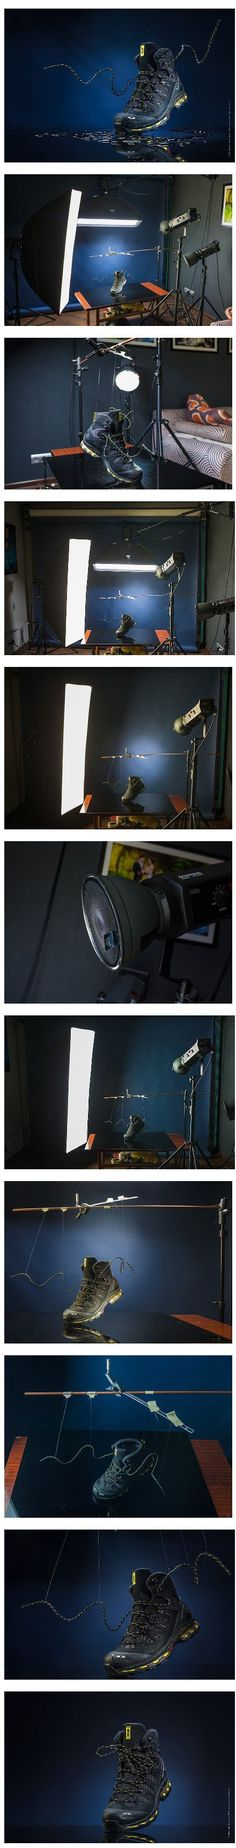 1d3ec080815c7d113b72610719d7f6be.jpg (440×3447) #photographylightingsetup